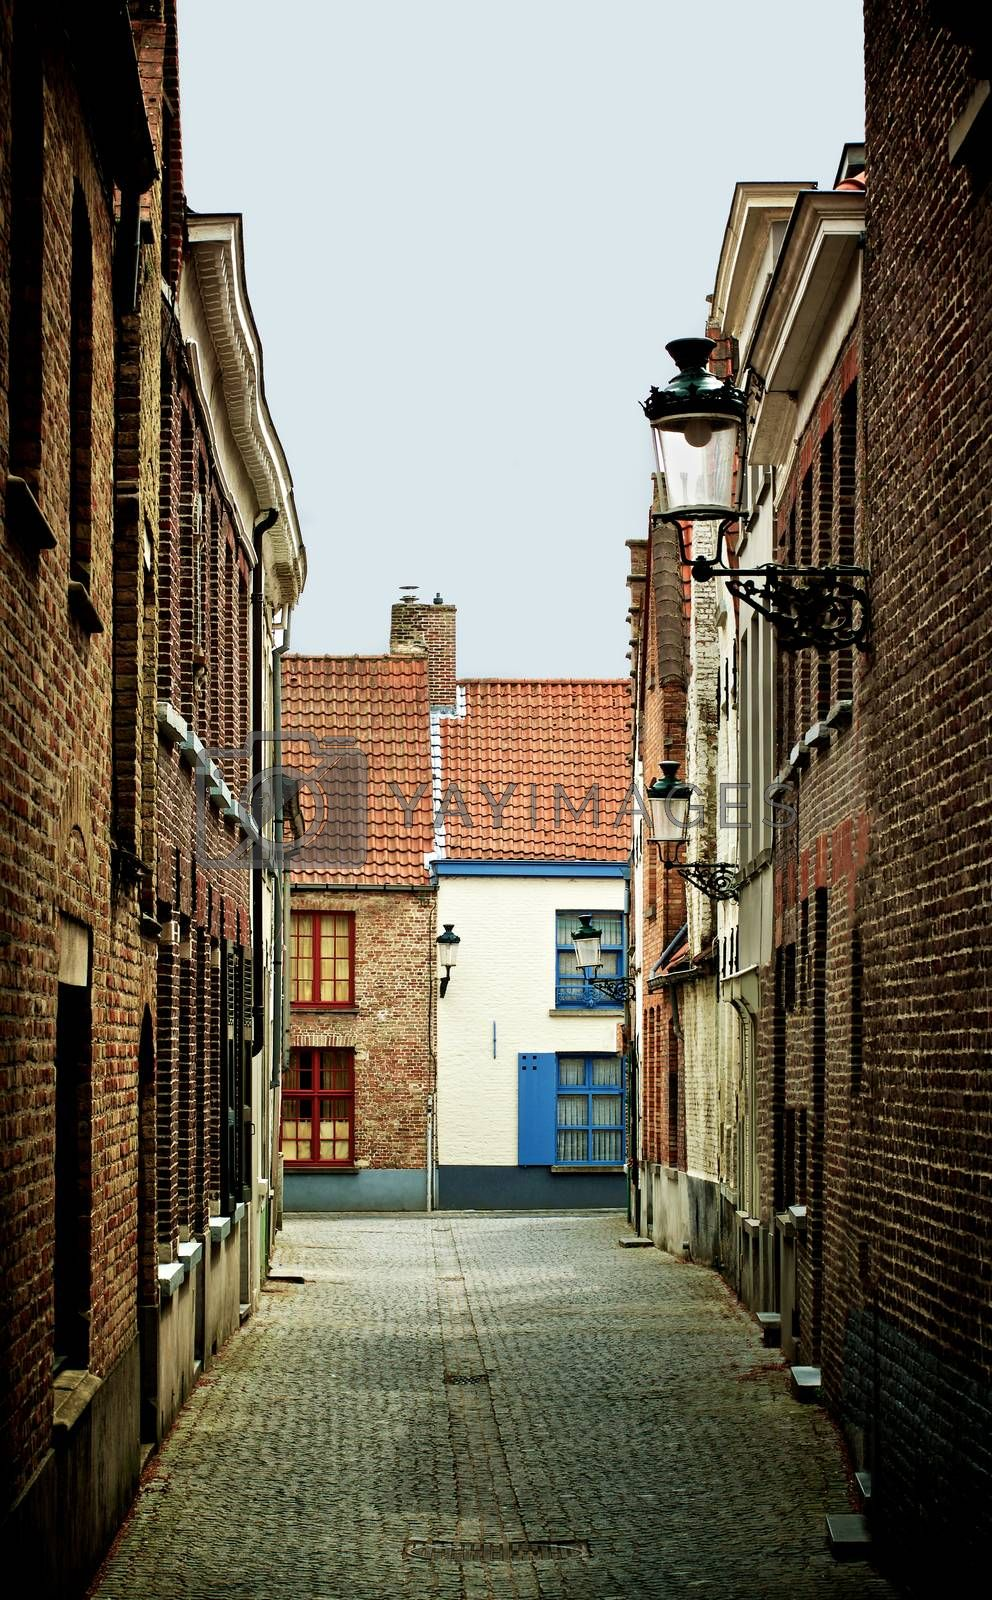 Obsolete Narrow Street with Multi Colored Old Houses and Street Lantern in Cloudy Day Outdoors. Bruges, Belgium